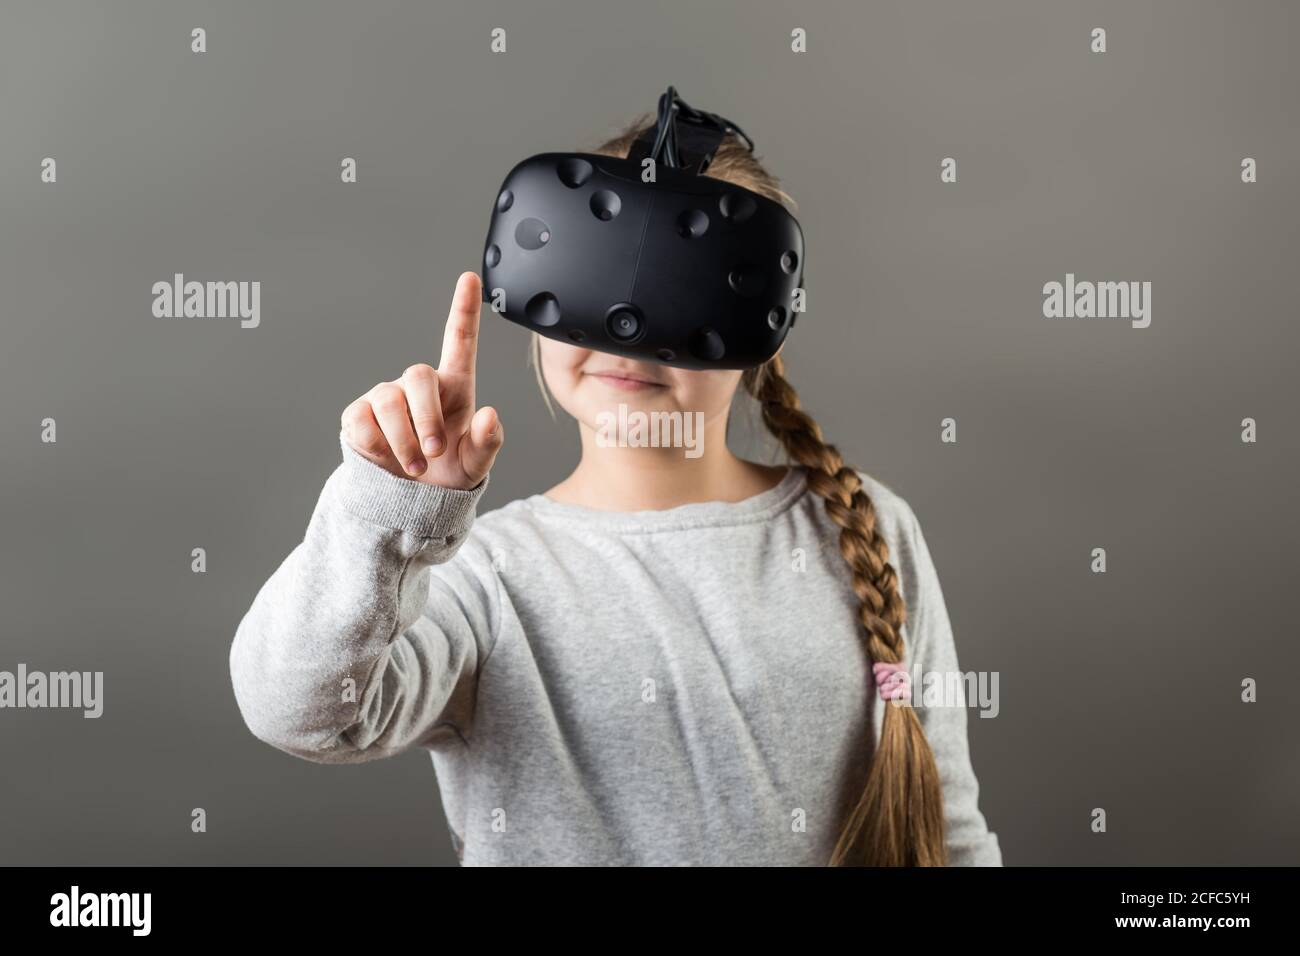 girl wear with with VR device and finger touch in air Stock Photo